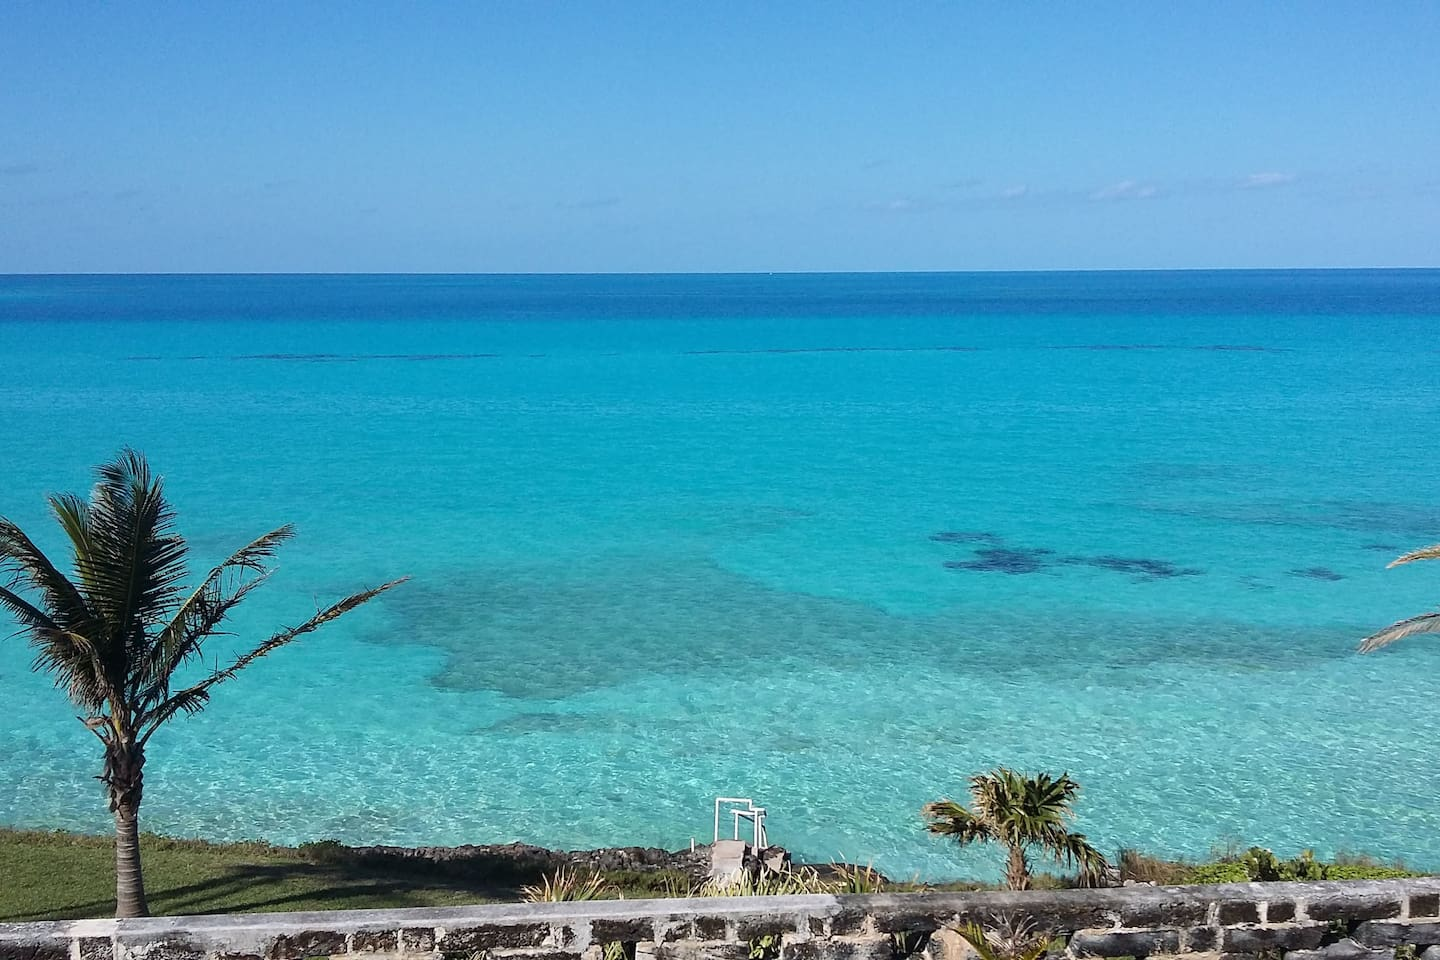 Swim, Snorkel or Kayak  every day from your own back yard on the West Coast Bermuda